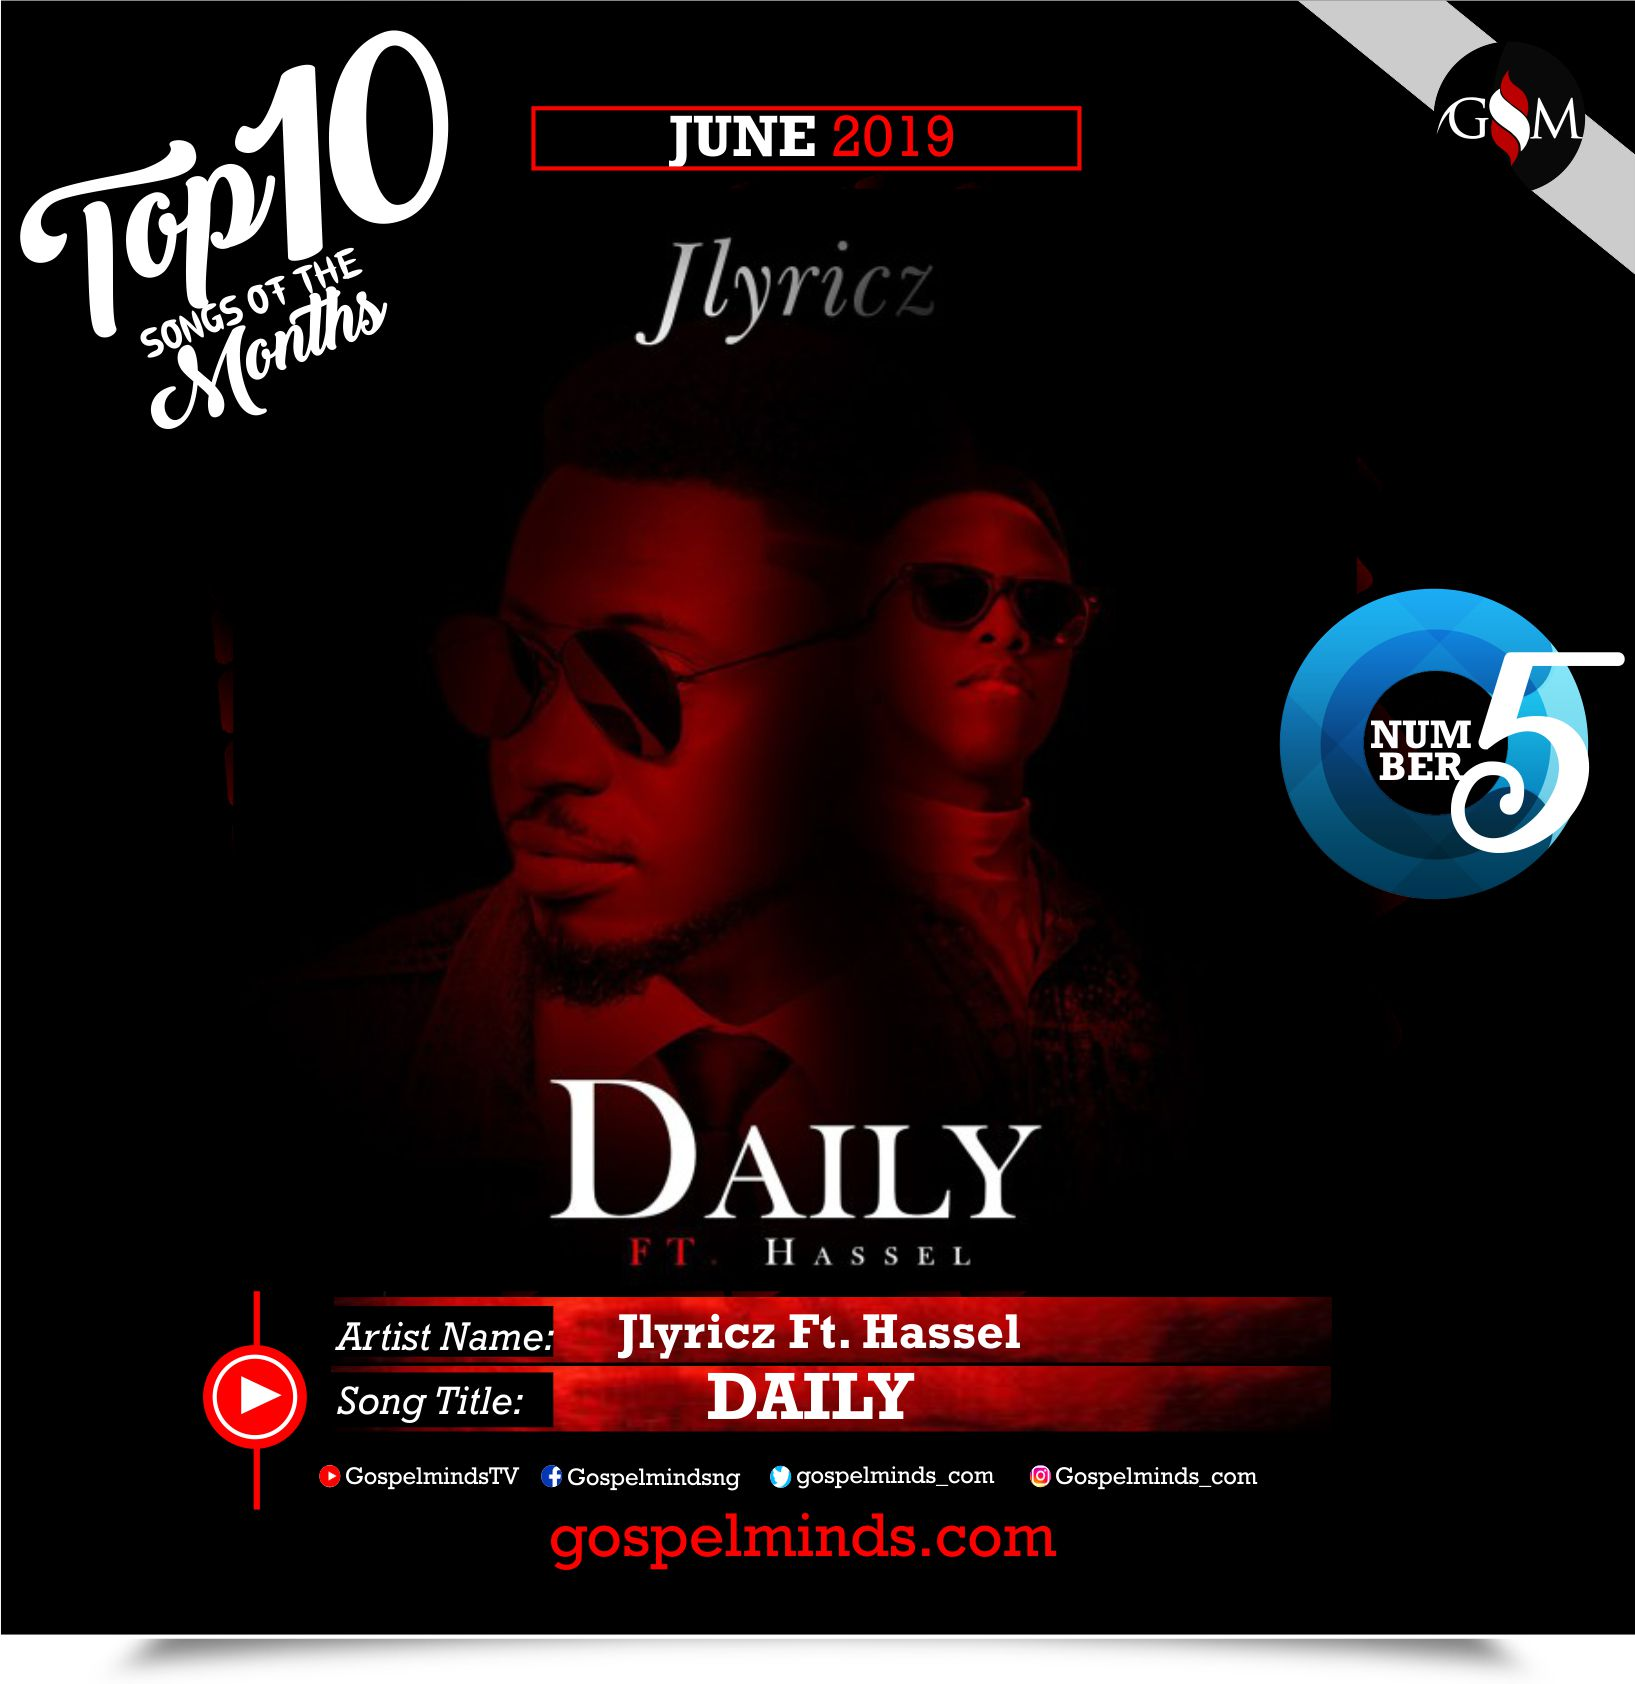 Top 10 Gospel Songs of The Month - June 2019 GospelMinds Ent. (Jlyricz – Daily Ft. Hassel)